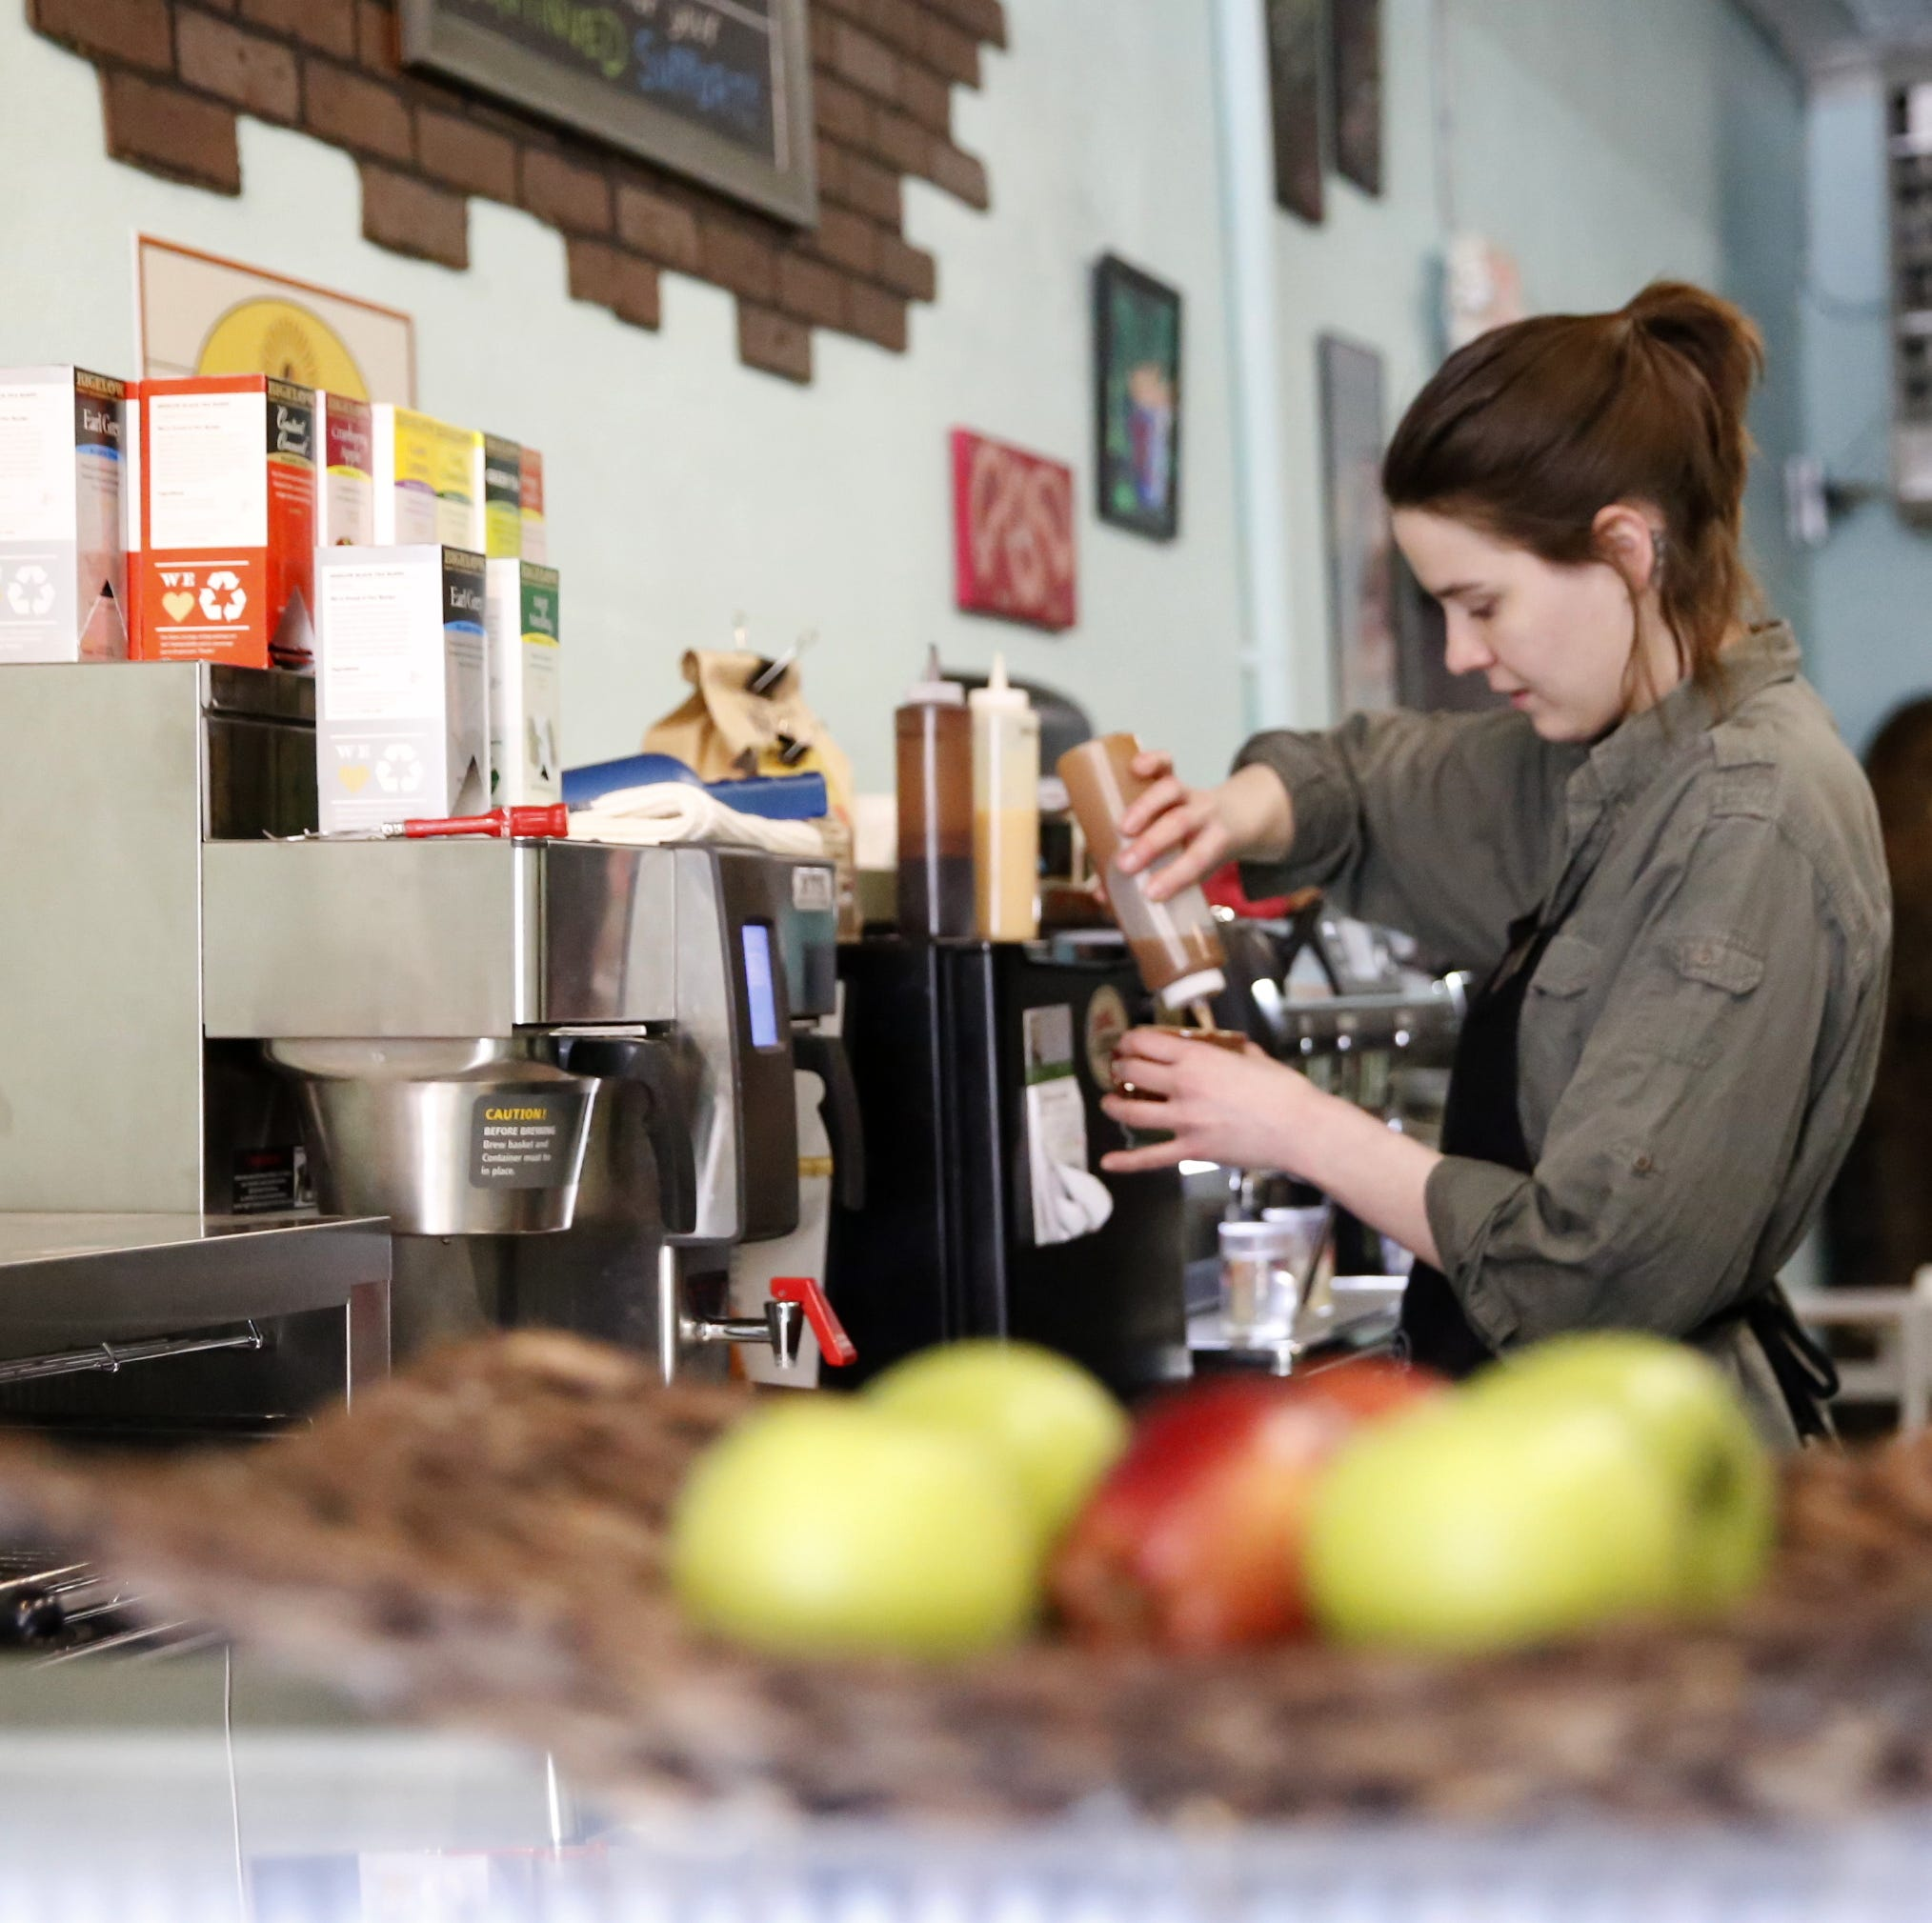 Cosmic Cafe offers coffee, baked goods in downtown Farmington